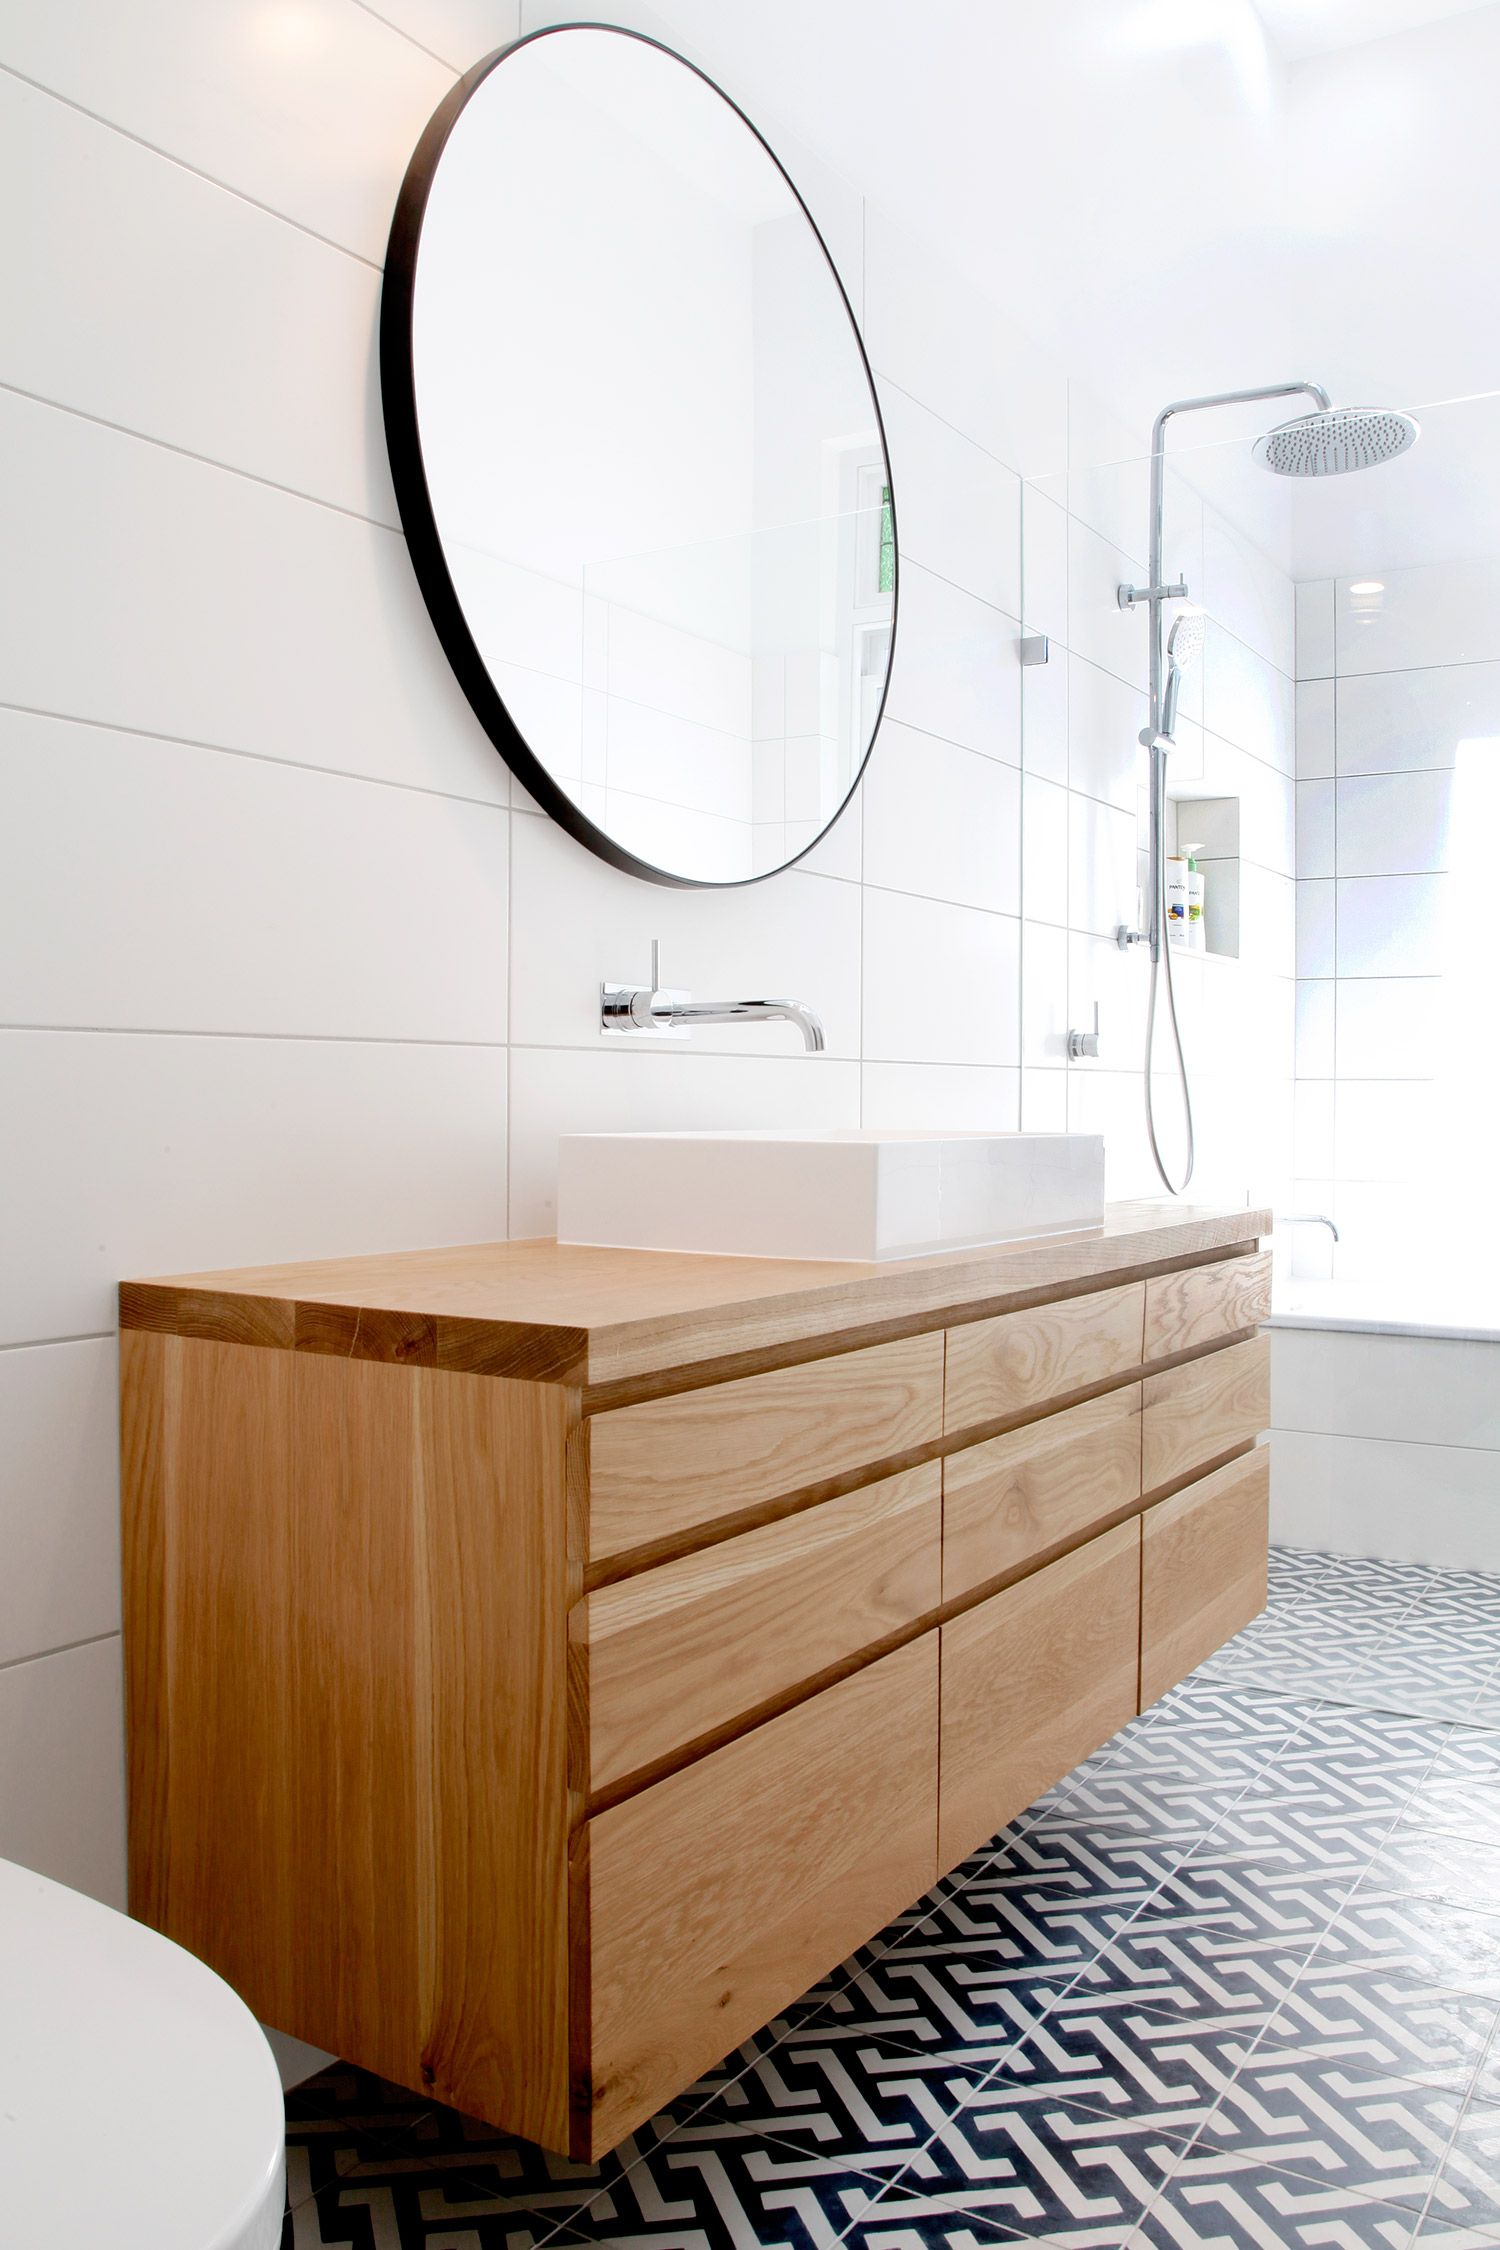 Introducing our range of floating timber vanities